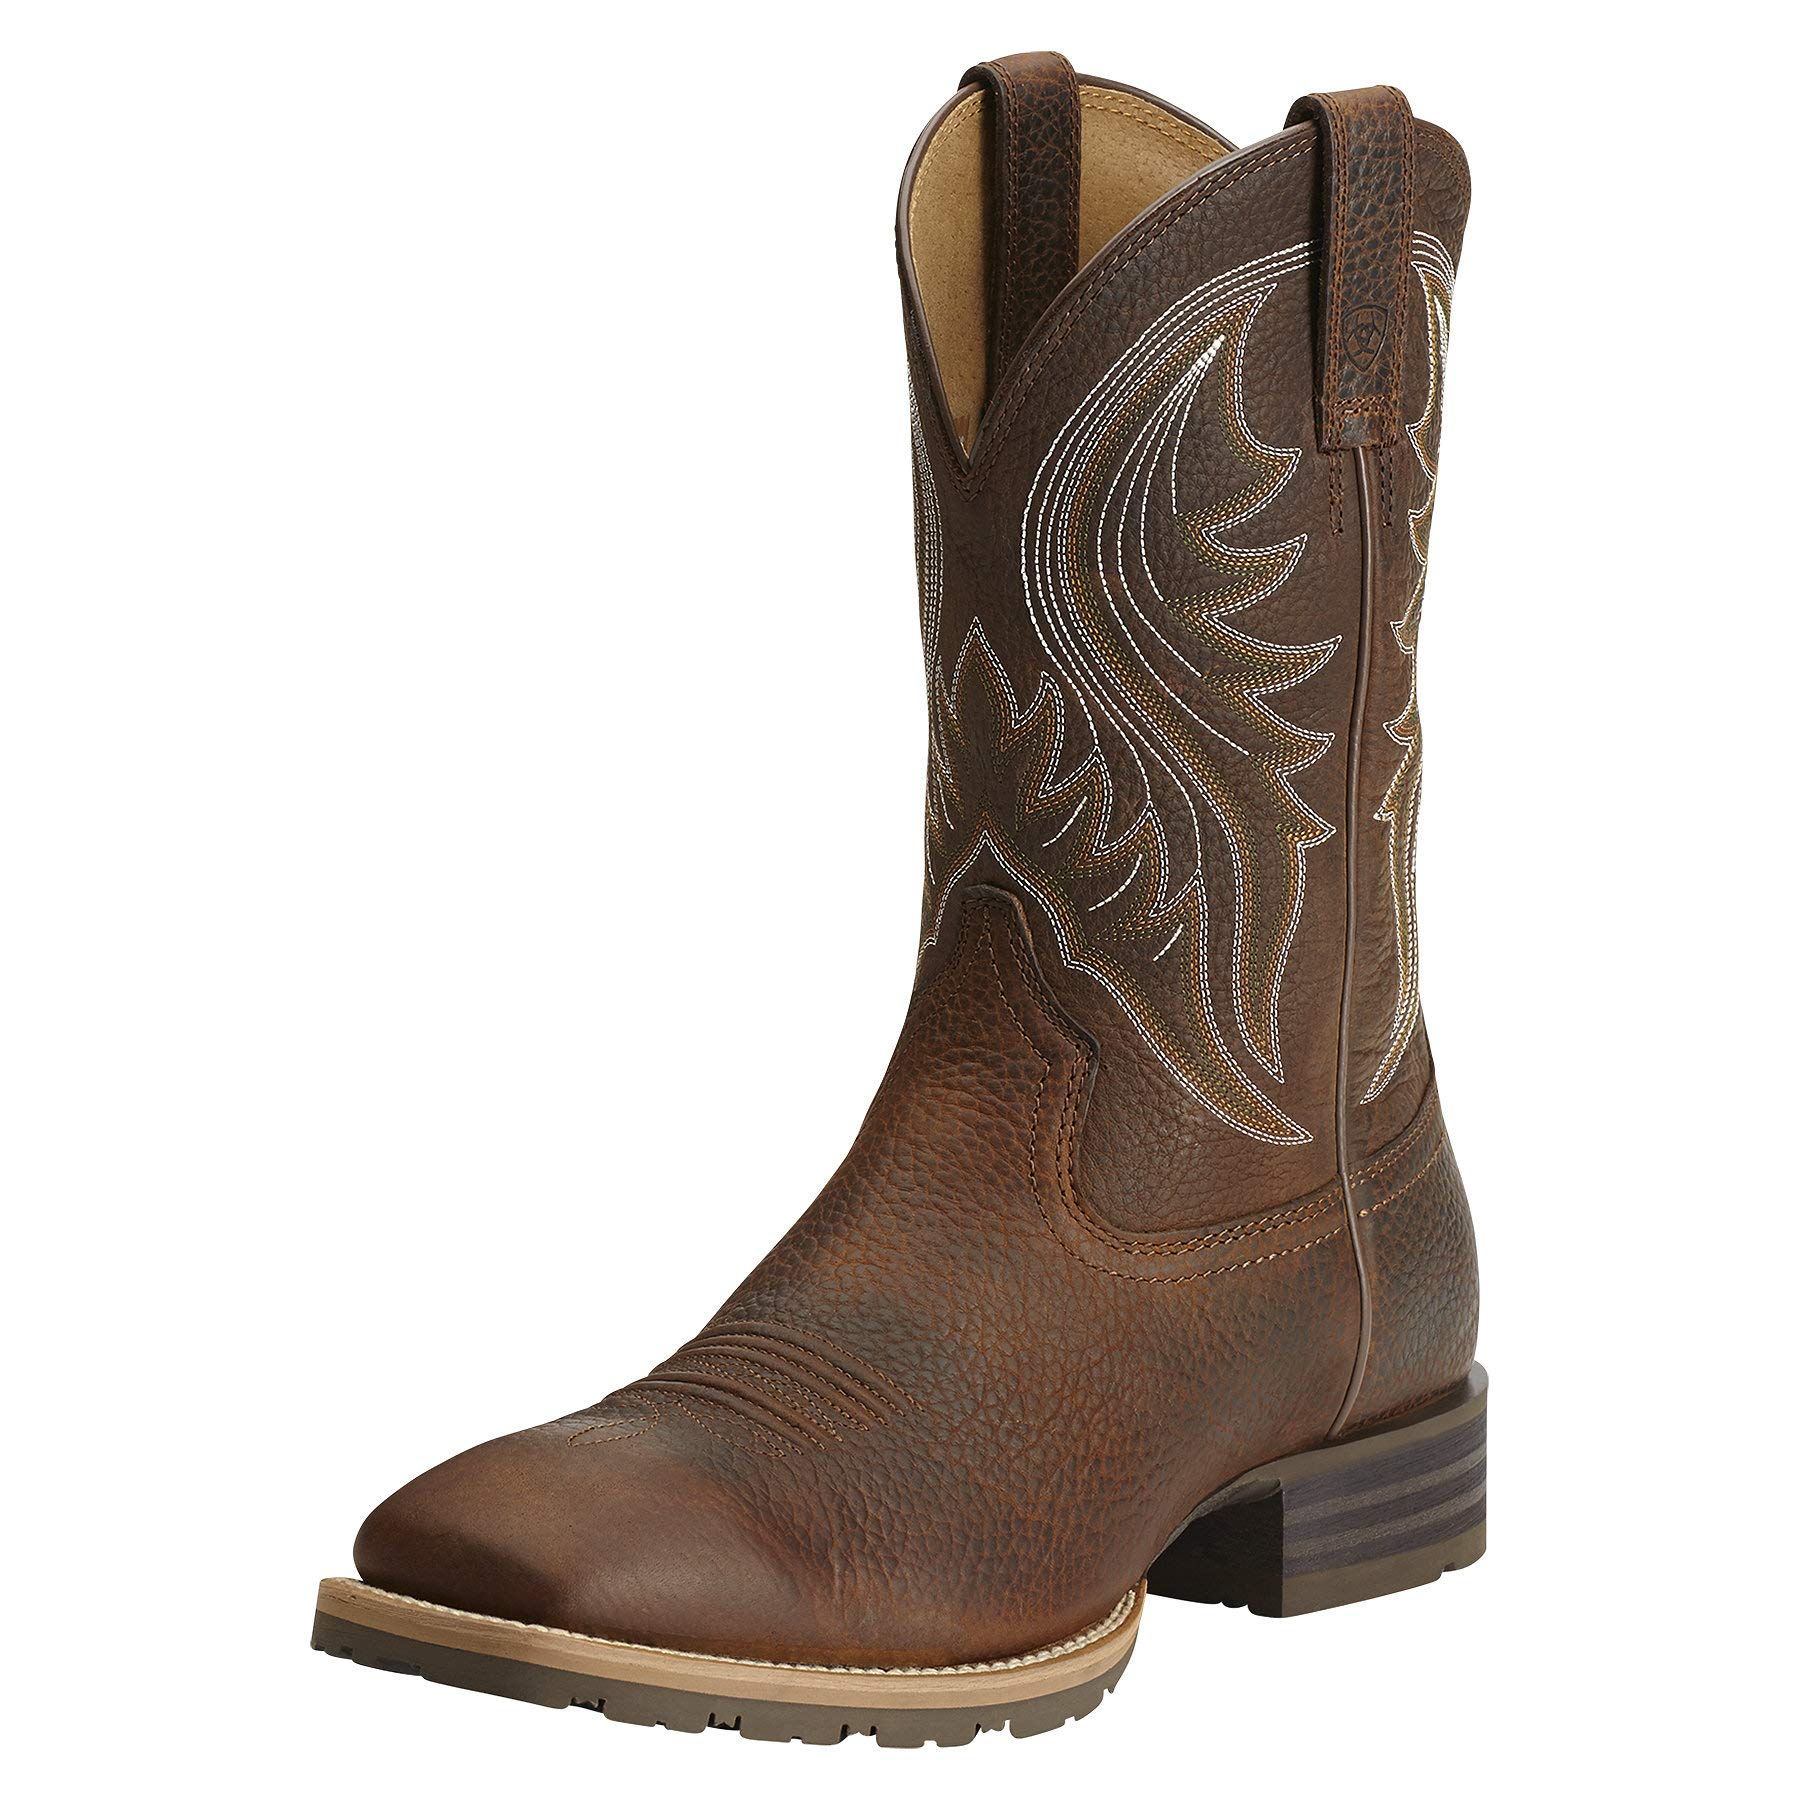 Ariat Men's Hybrid Rancher Western Boot, Brown Oiled Rowdy, 11.5 2E US by ARIAT